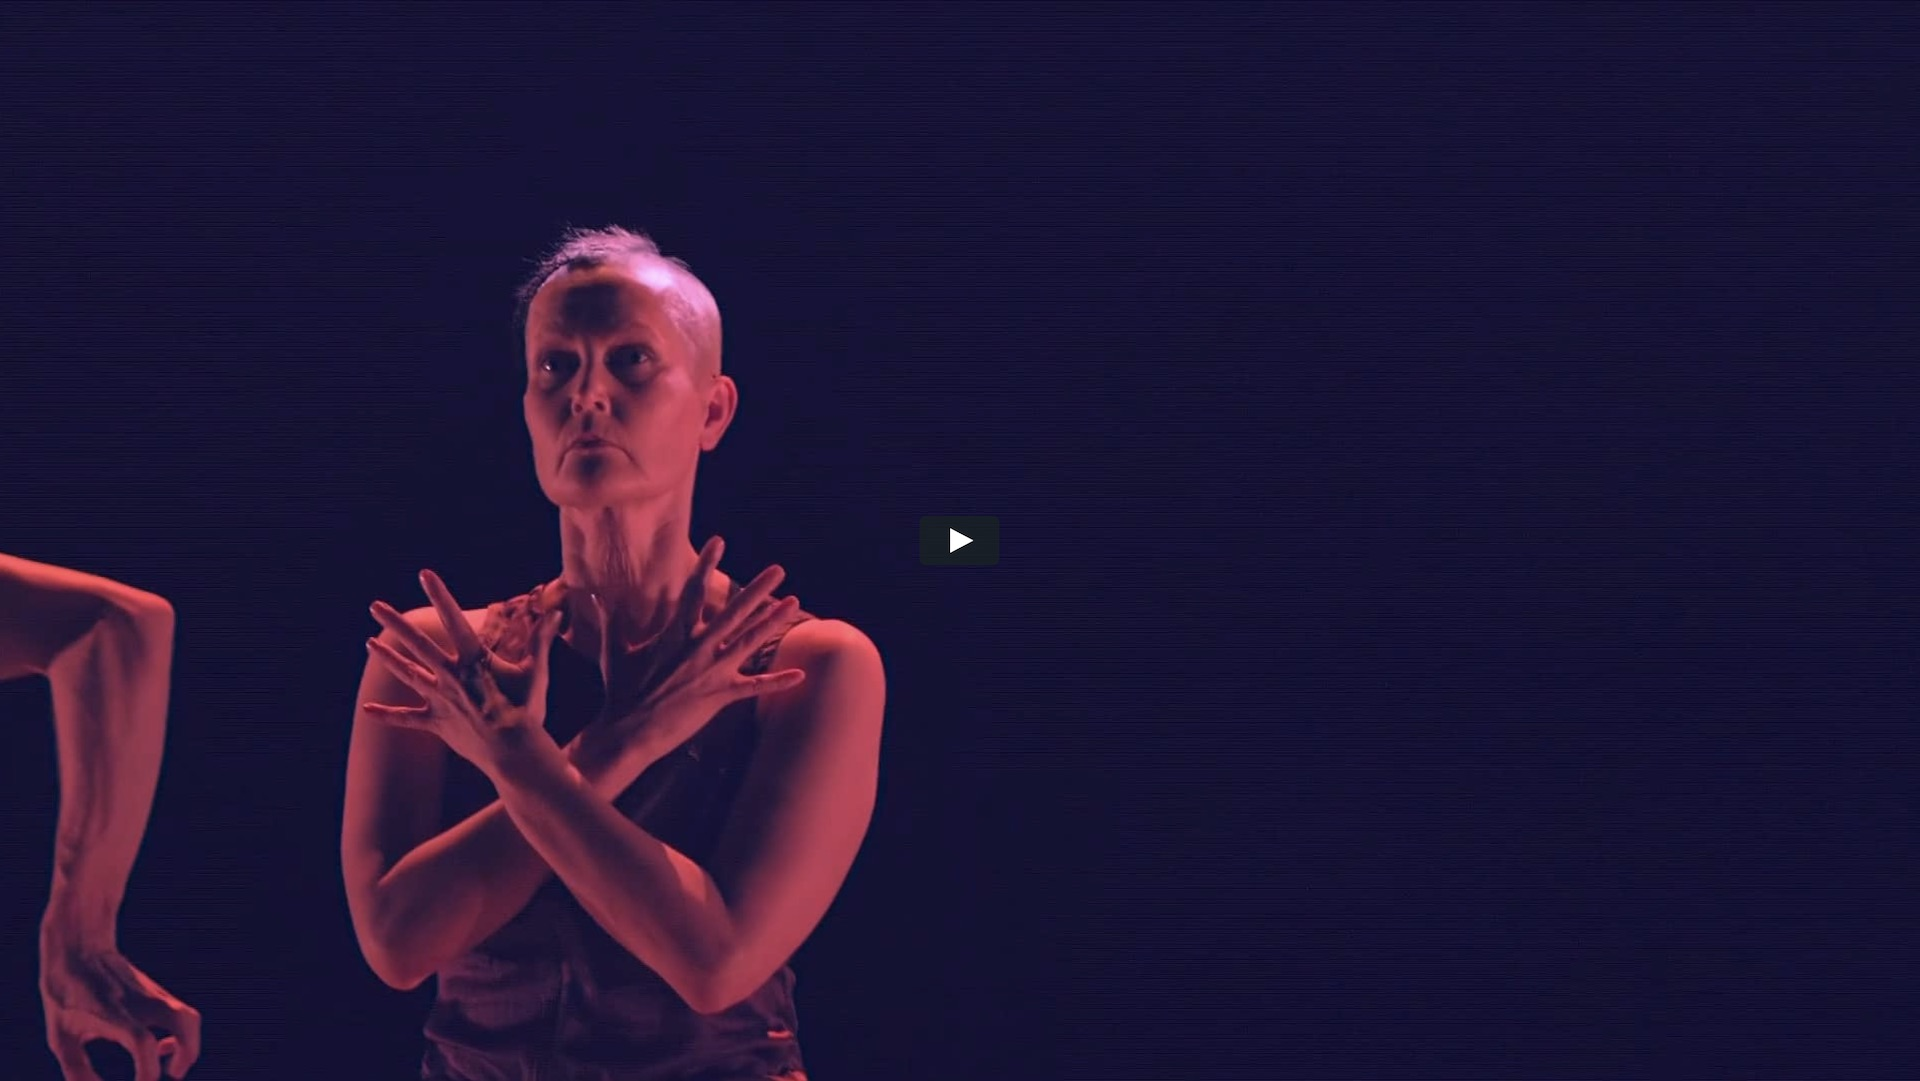 Follow choreographer and dancer Virpi Pahkinen during the rehearsals of Monolit Polygon.